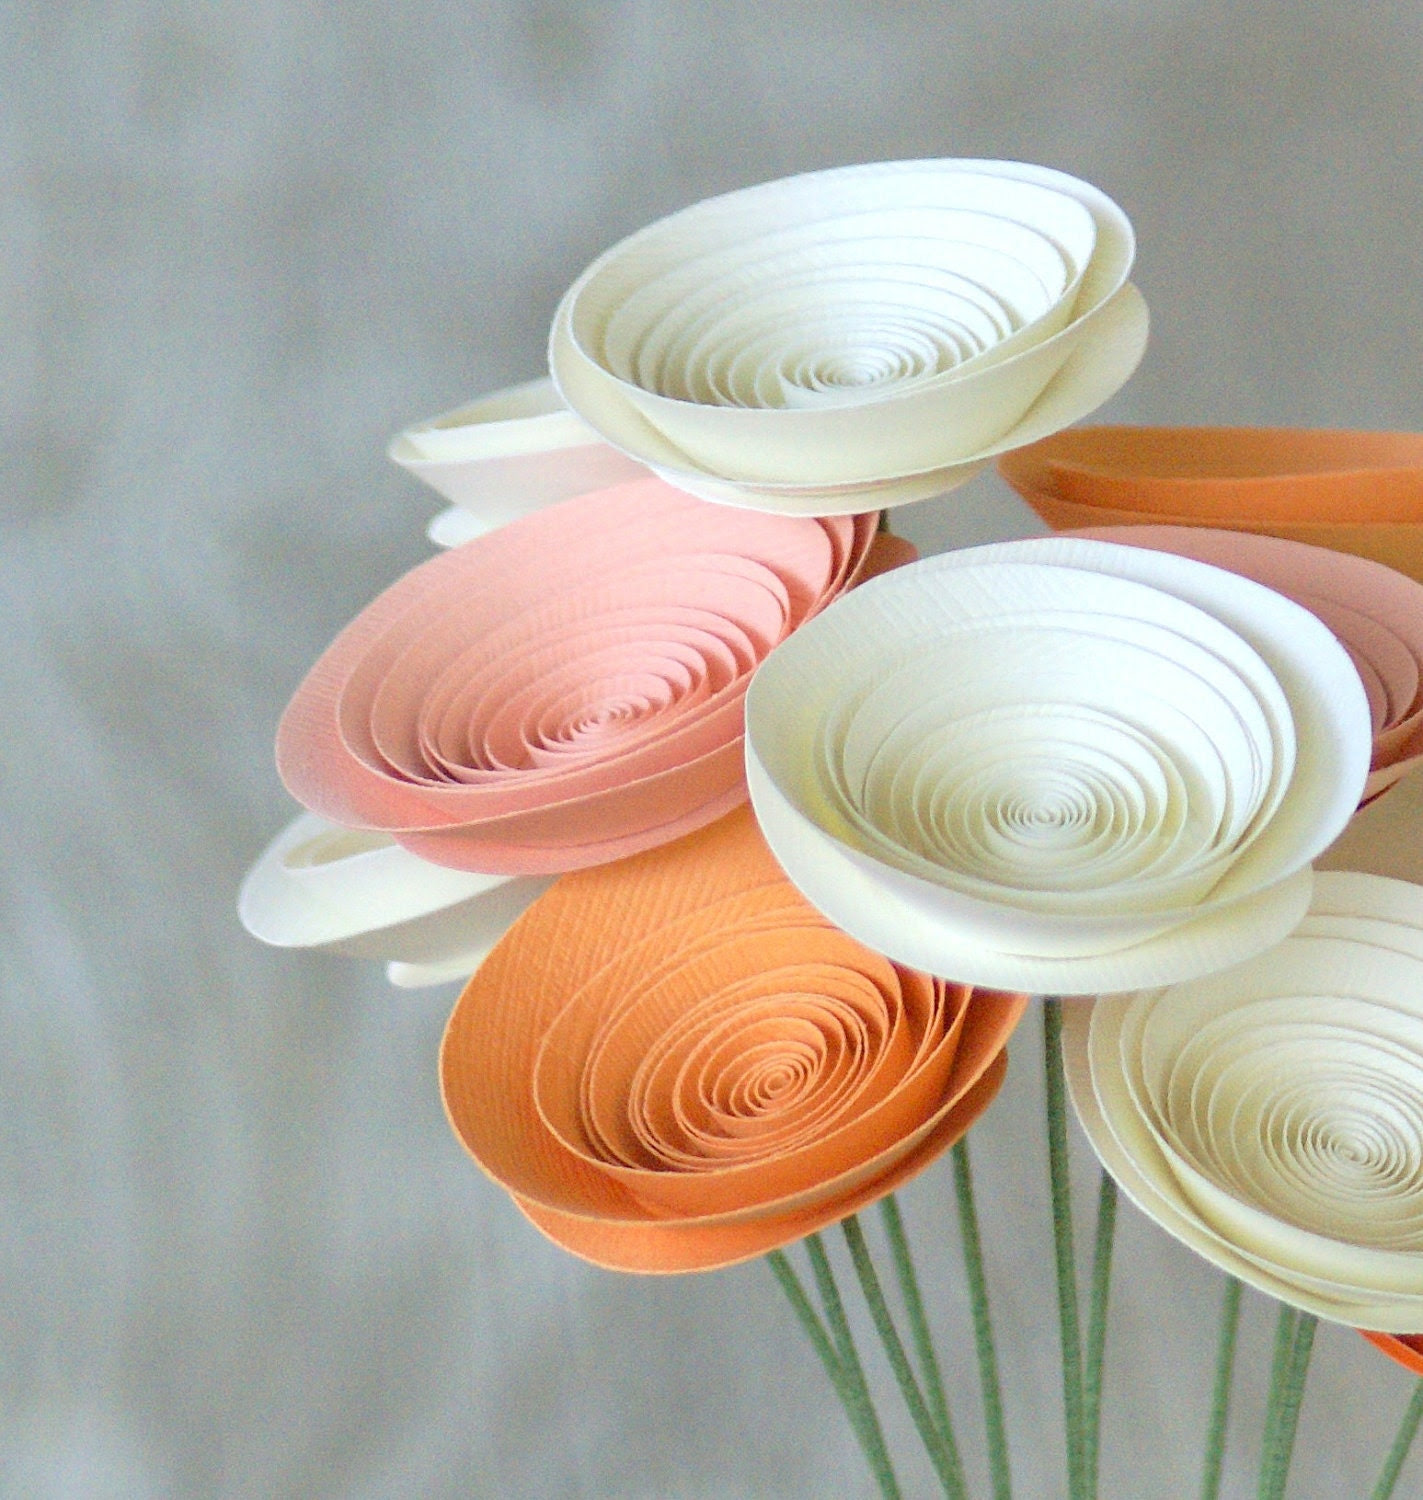 Easter Pastel Paper Flowers in Creamsicle -- Peaches and Cream Spring Centerpiece -- Sherbet Tangerine, Apricot, Peach, and Ivory